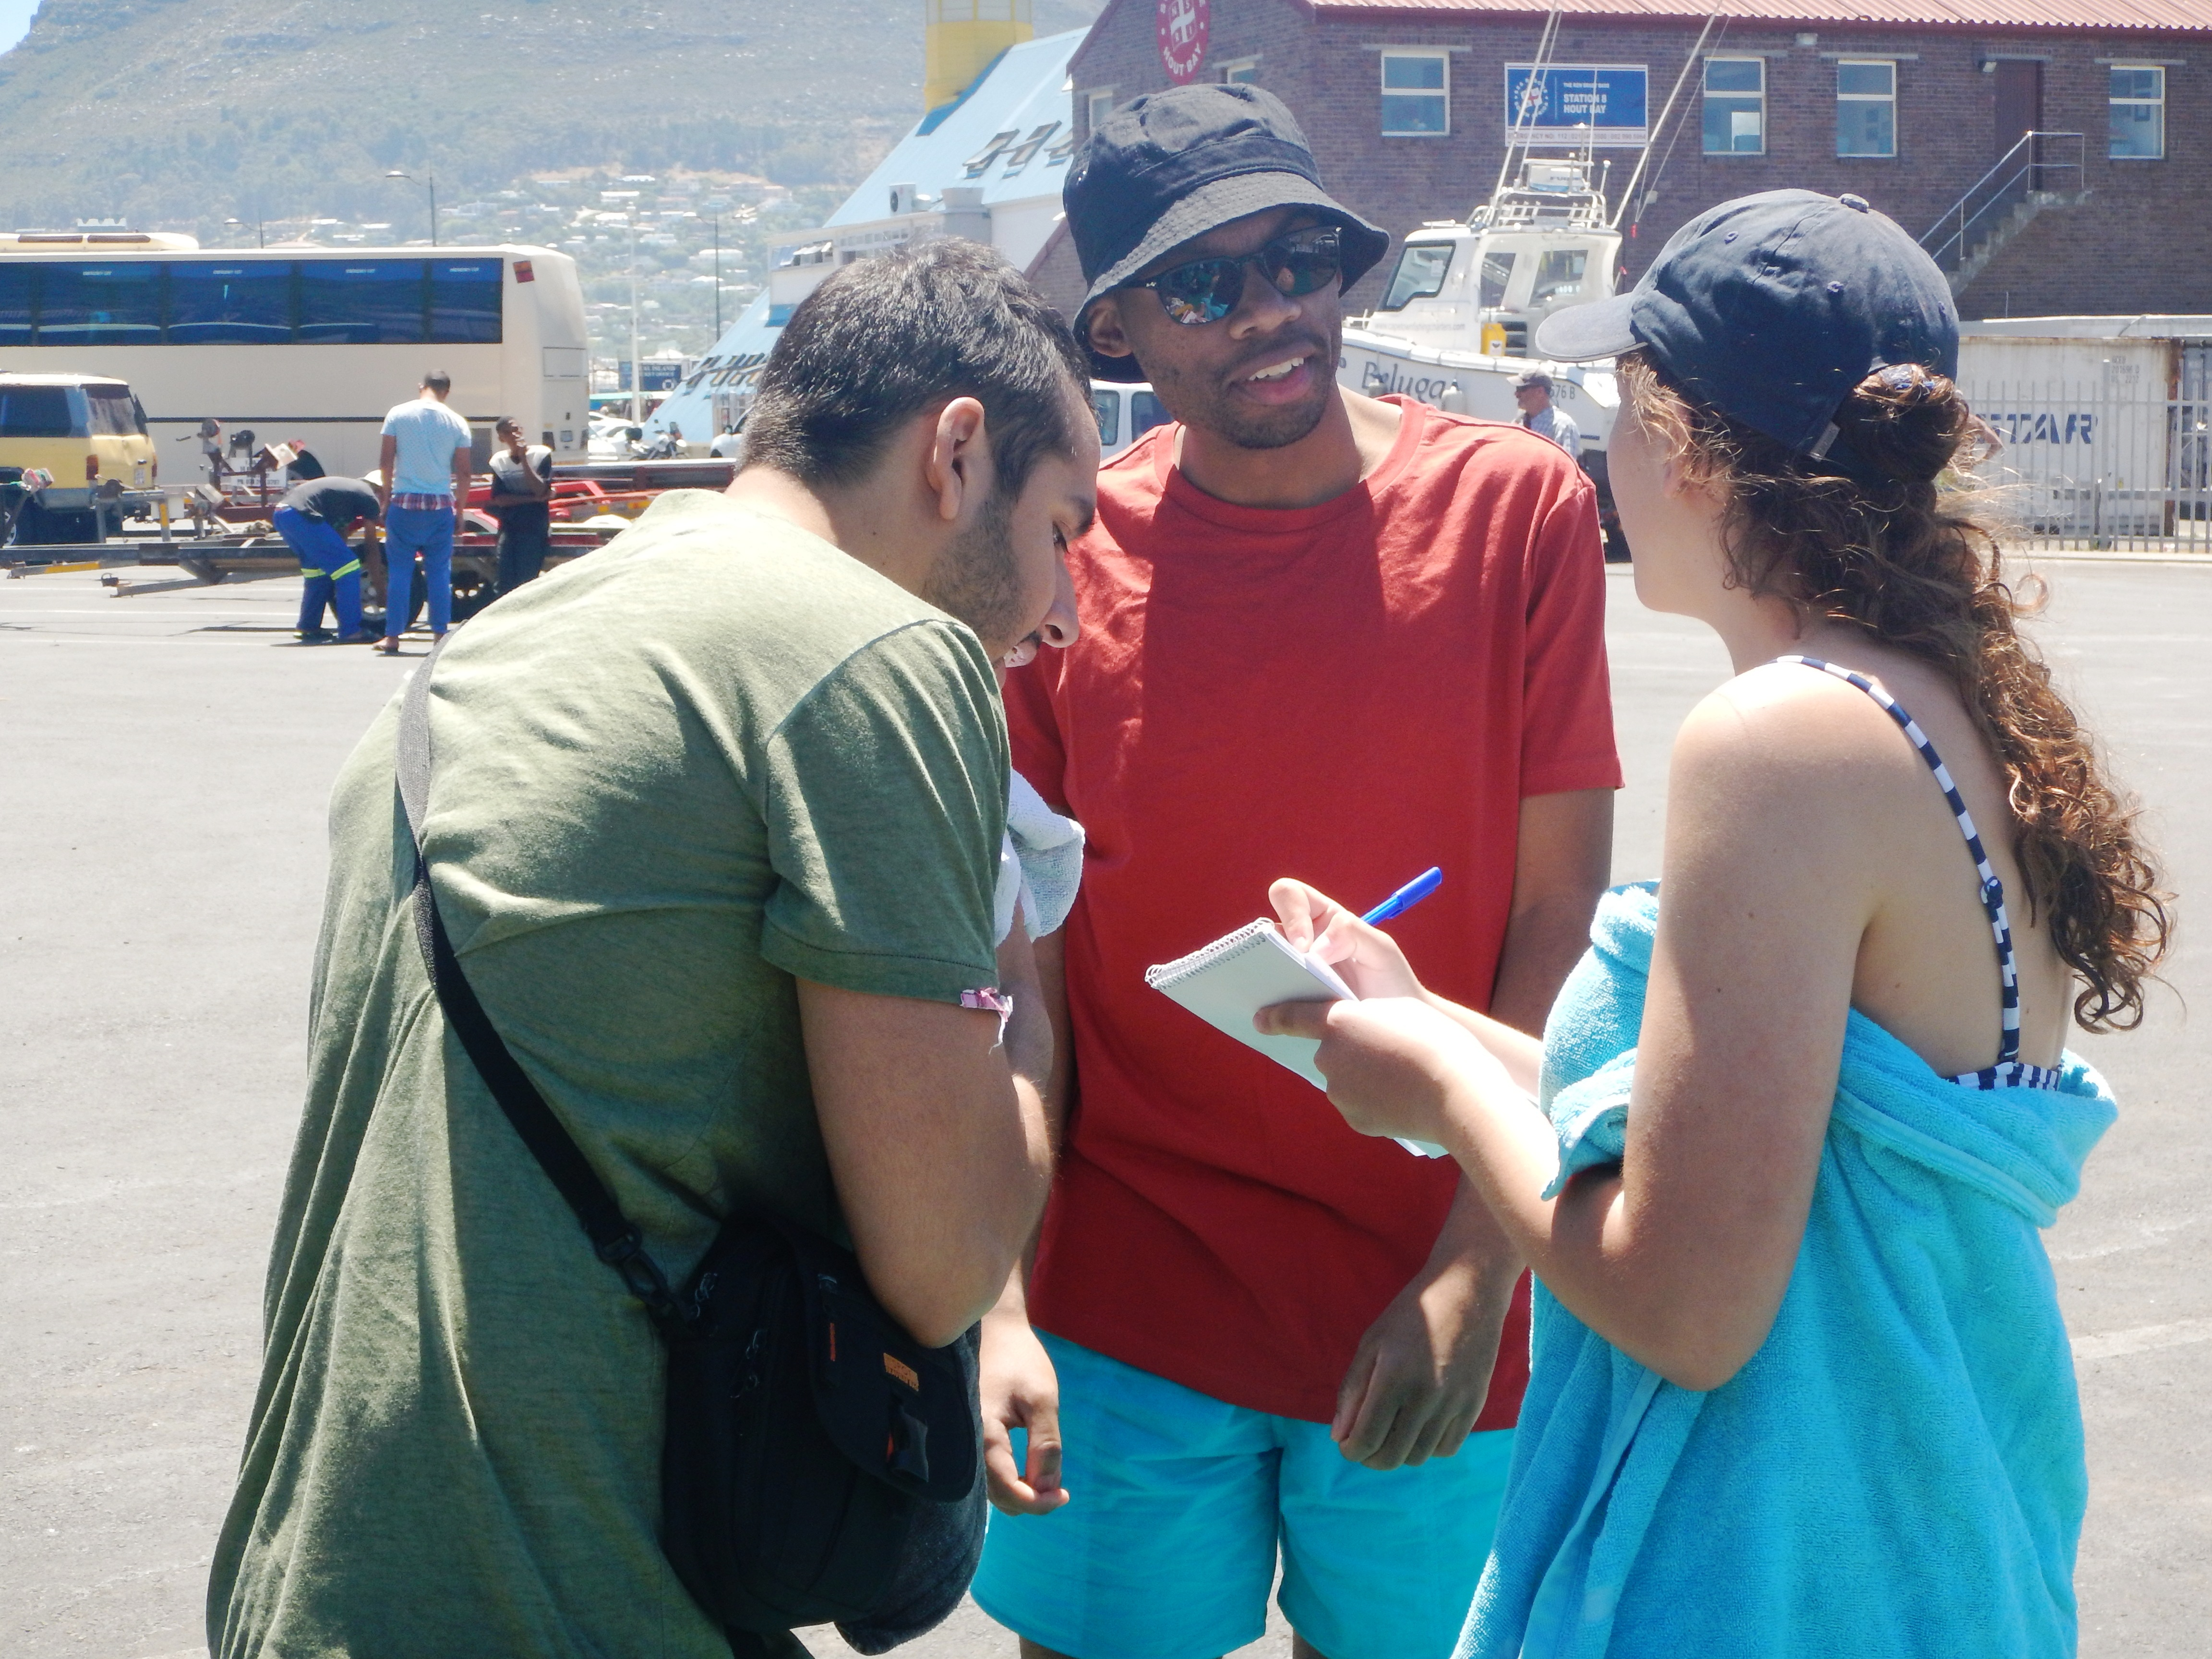 Casha interviews some tourists after their seal snorkel with Animal Ocean.